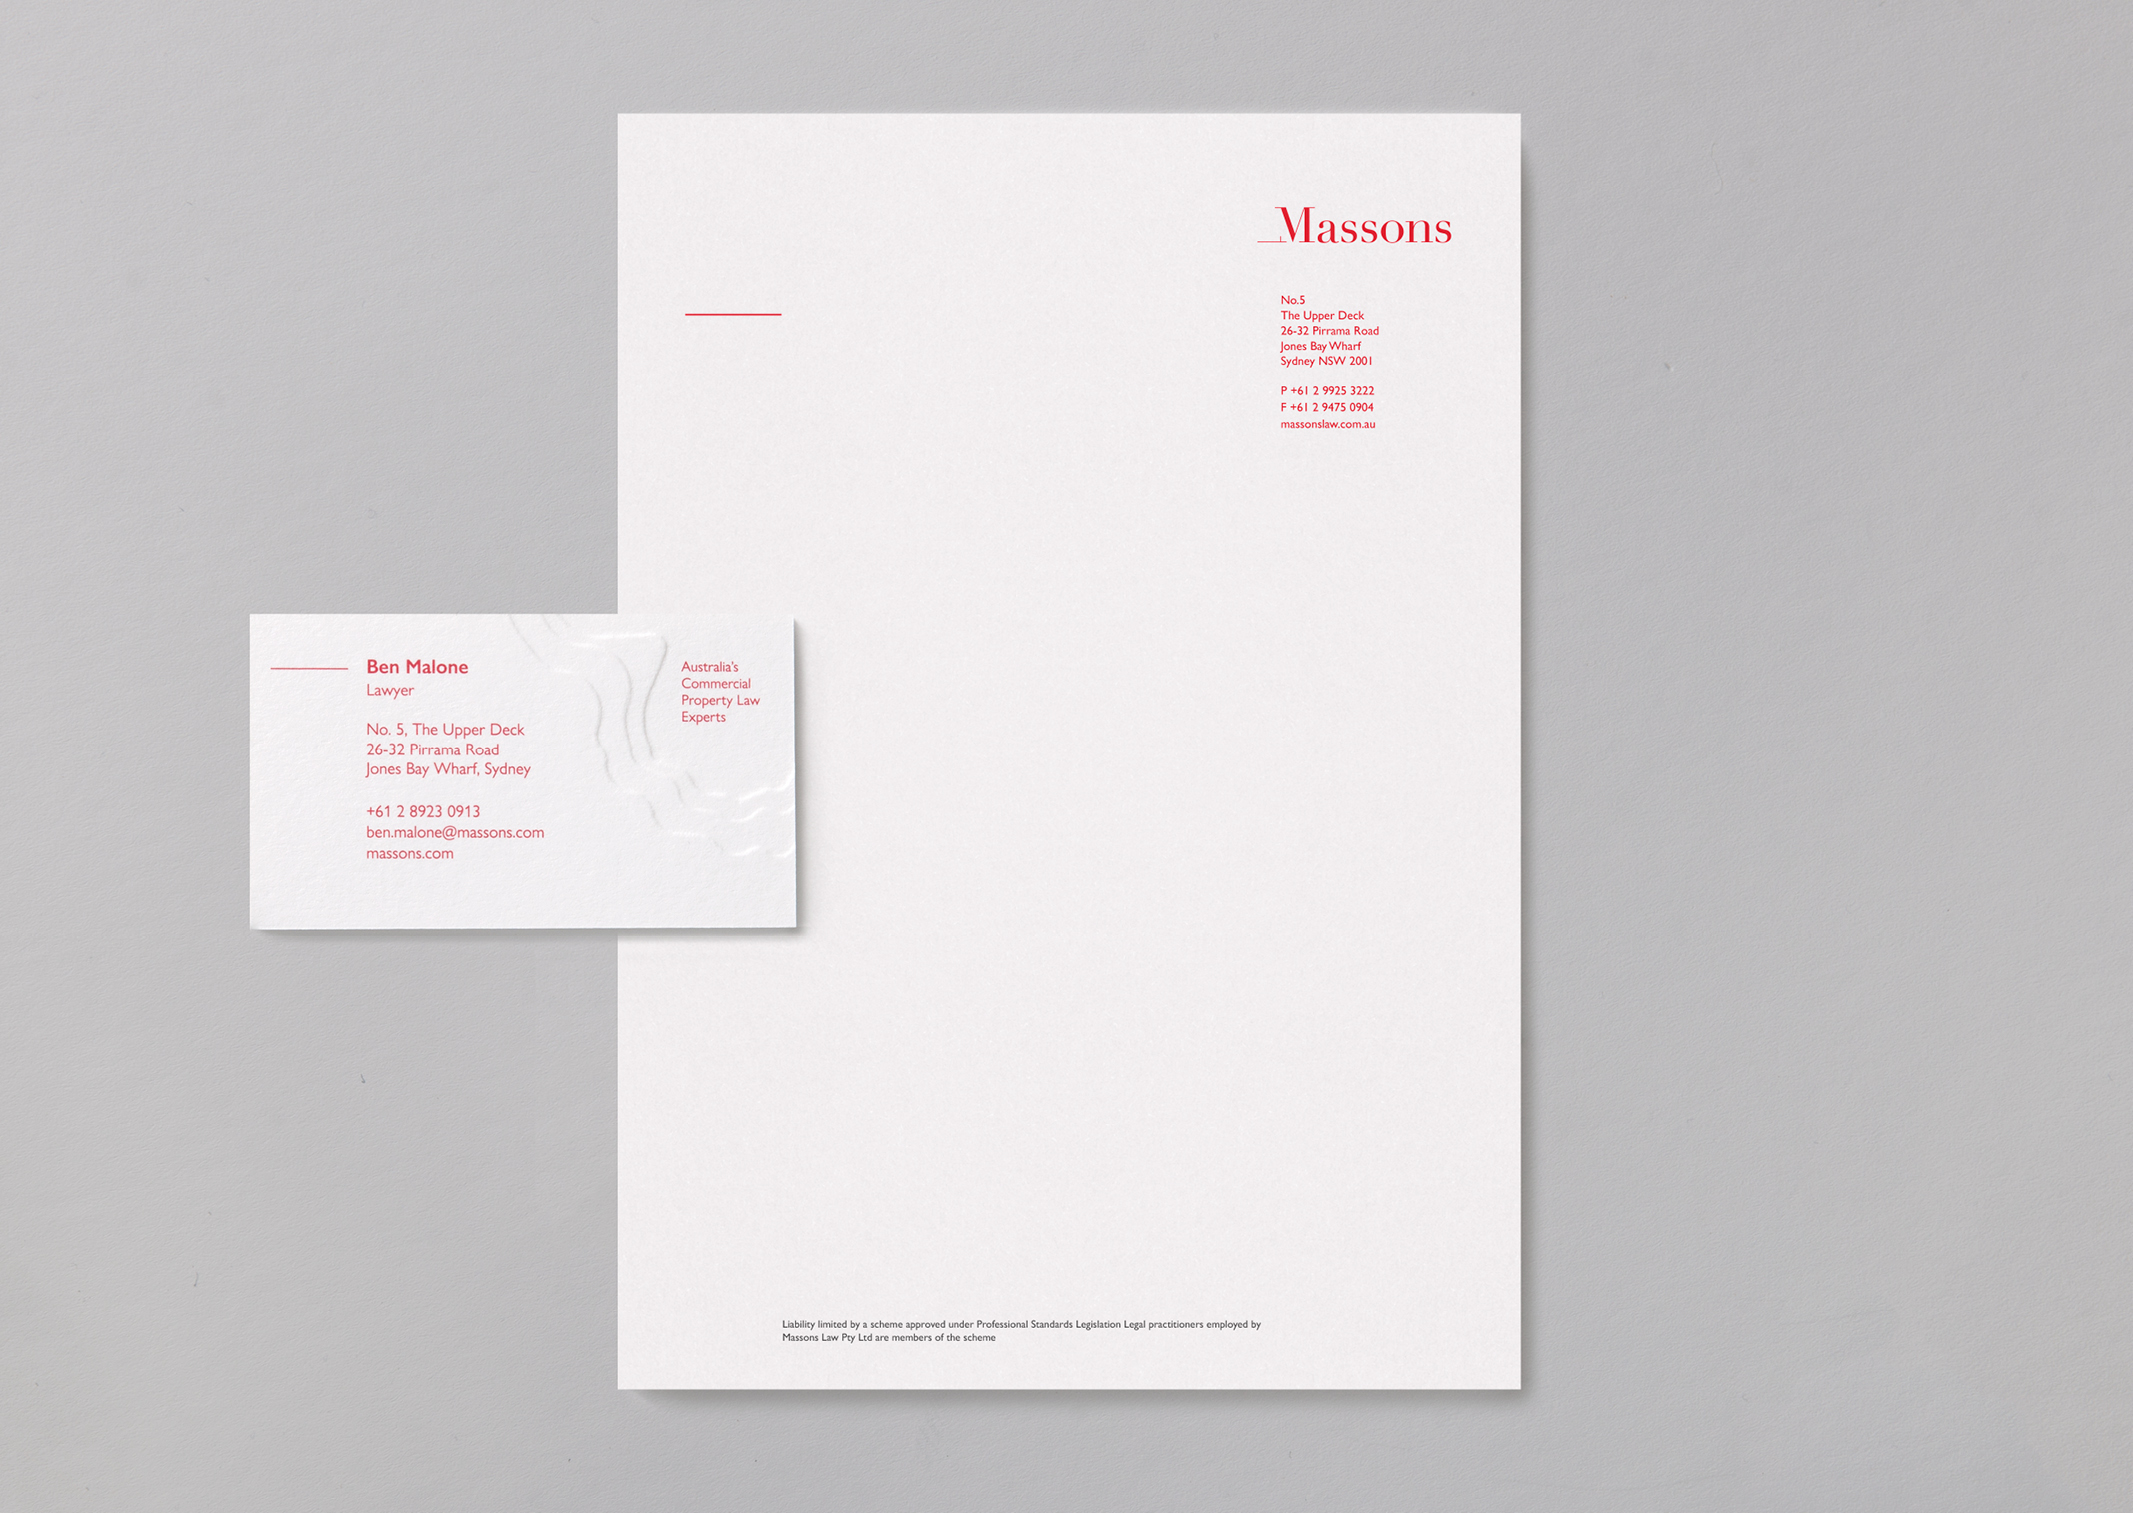 Massons business cards feature a deep topographic map emboss and matching letterhead